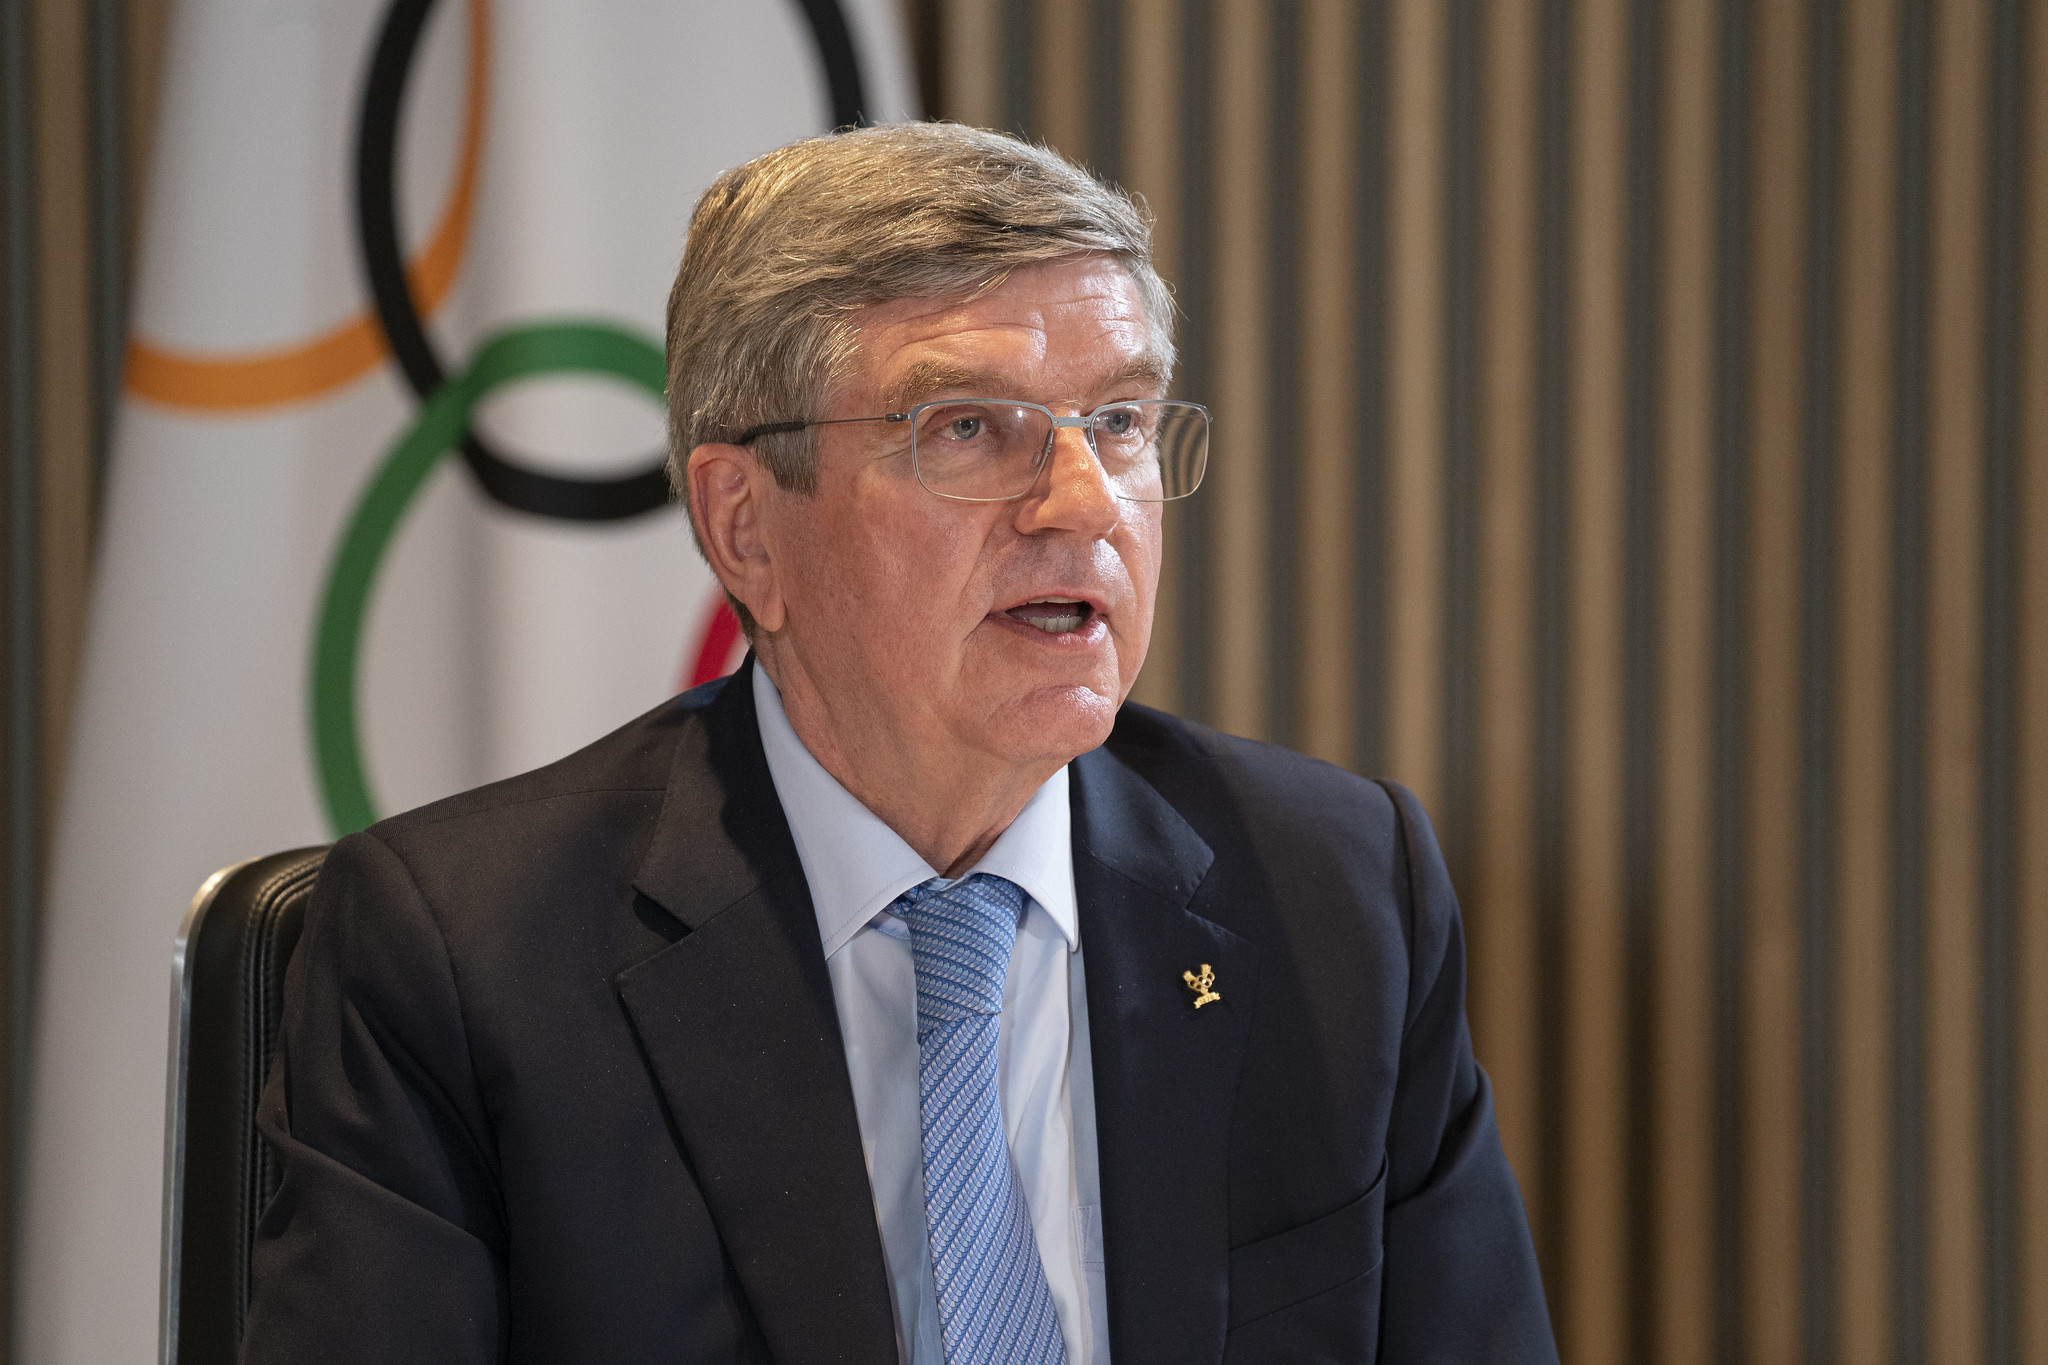 The German will be re-elected for his second and final term at the virtual IOC Session this week ©IOC